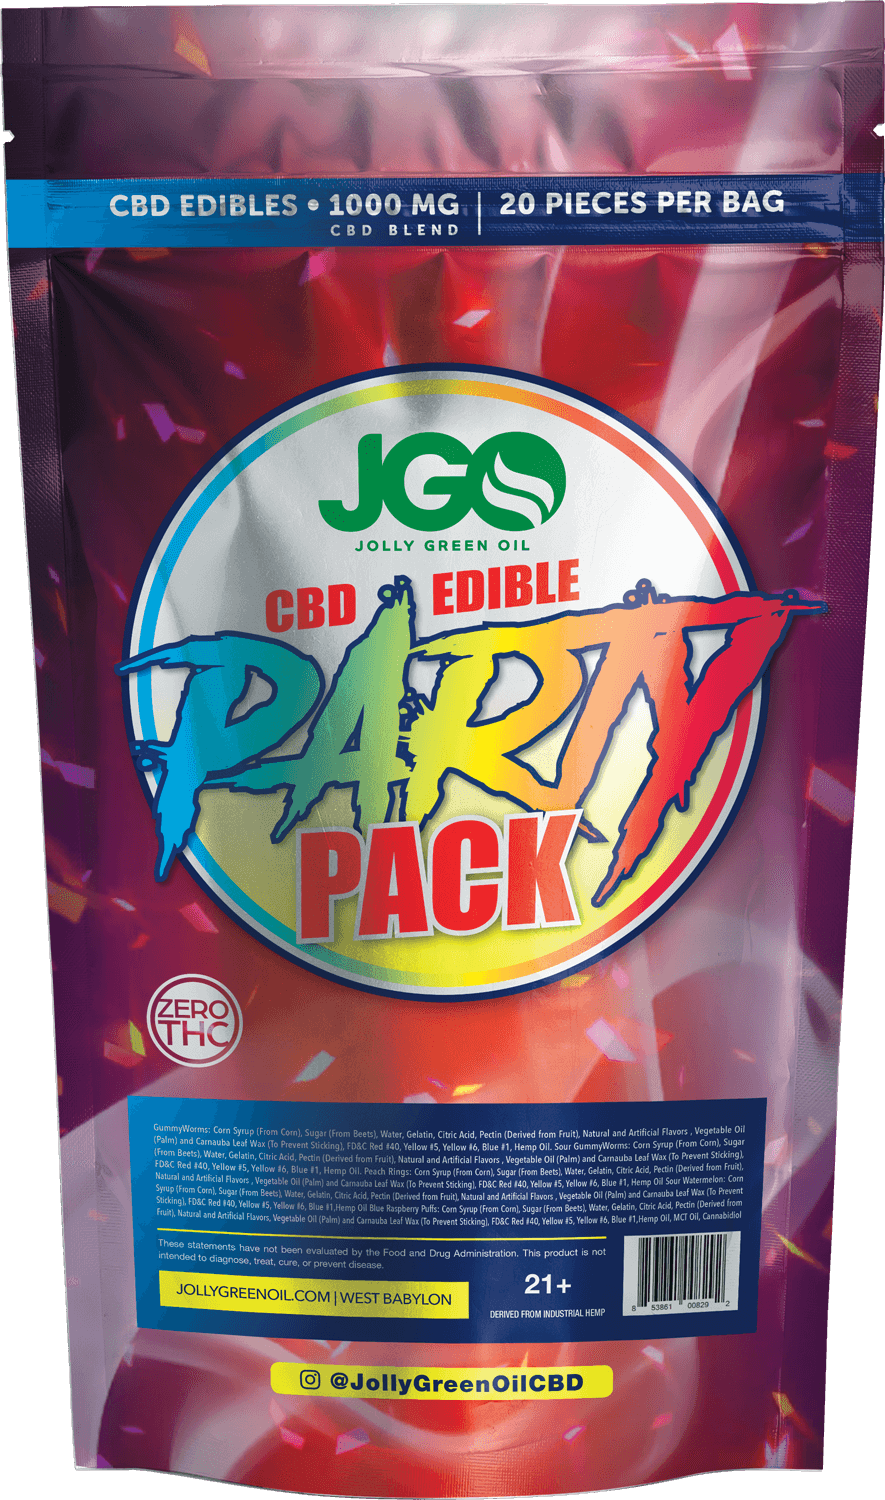 Jolly green oil edibles | JGO party pack 1000mg